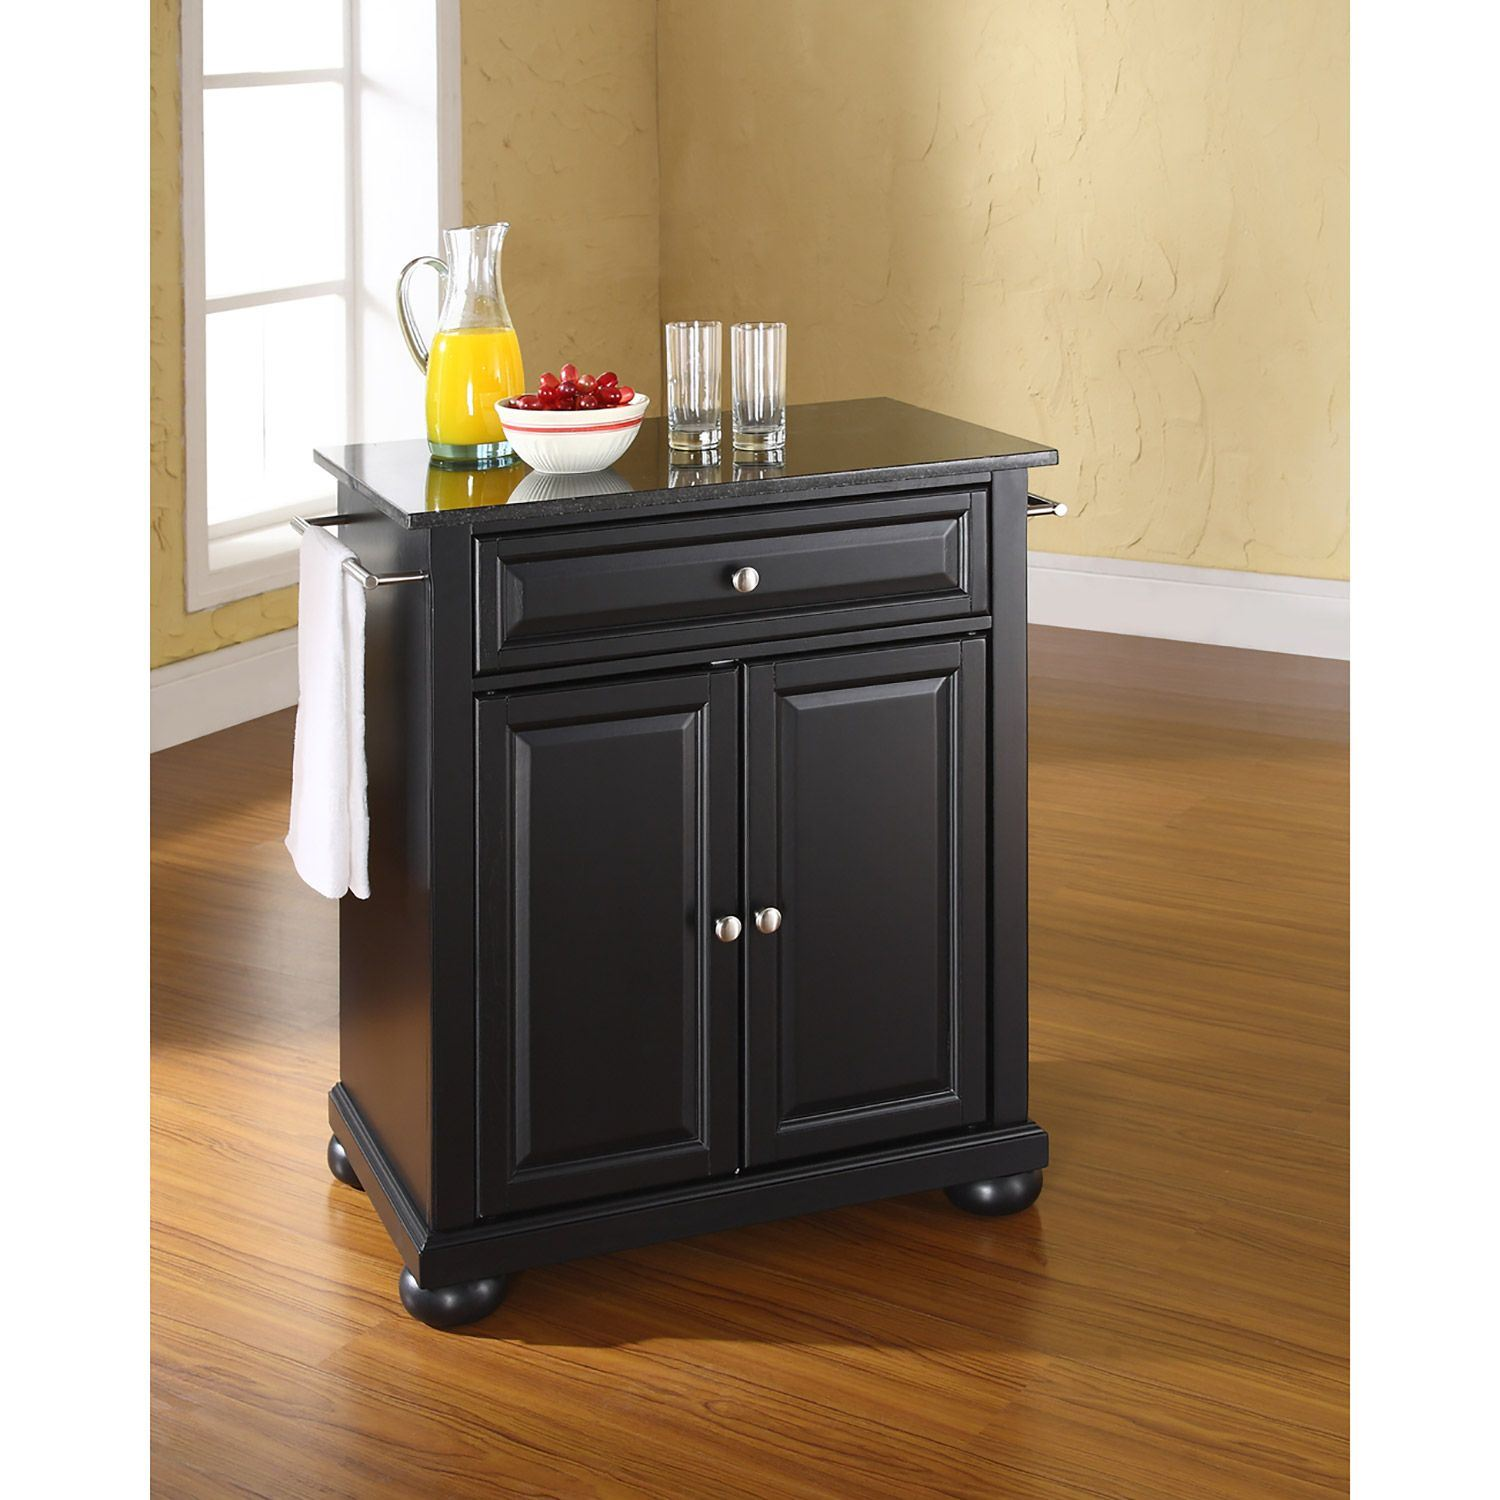 Picture of Alexandria Black Granite Top Kitchen Cart, Black *